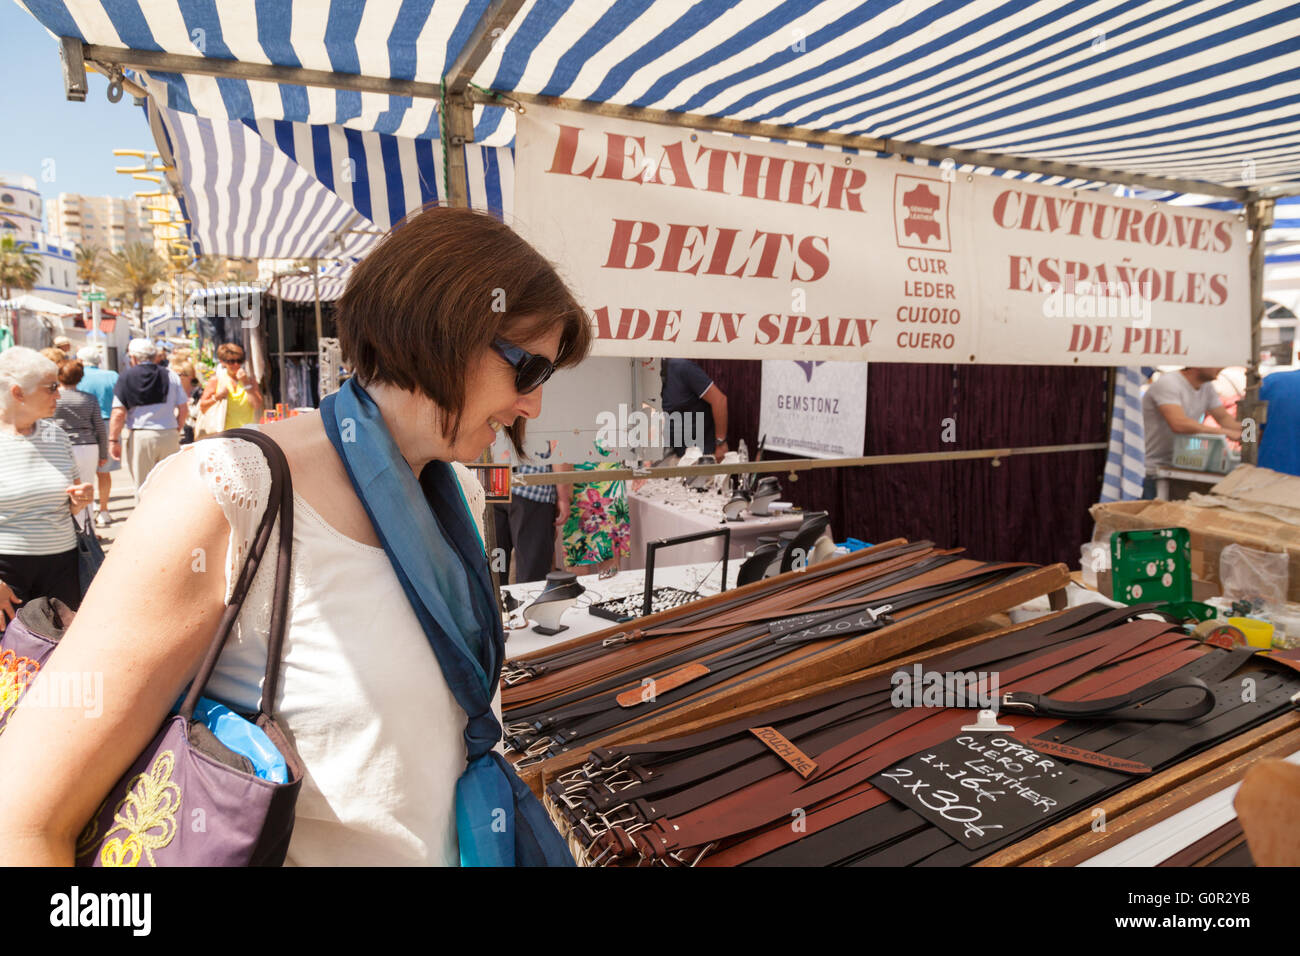 Woman buying leather belts at a leather belt stall, Estepona market, Costa del Sol, Andalusia Spain Europe - Stock Image